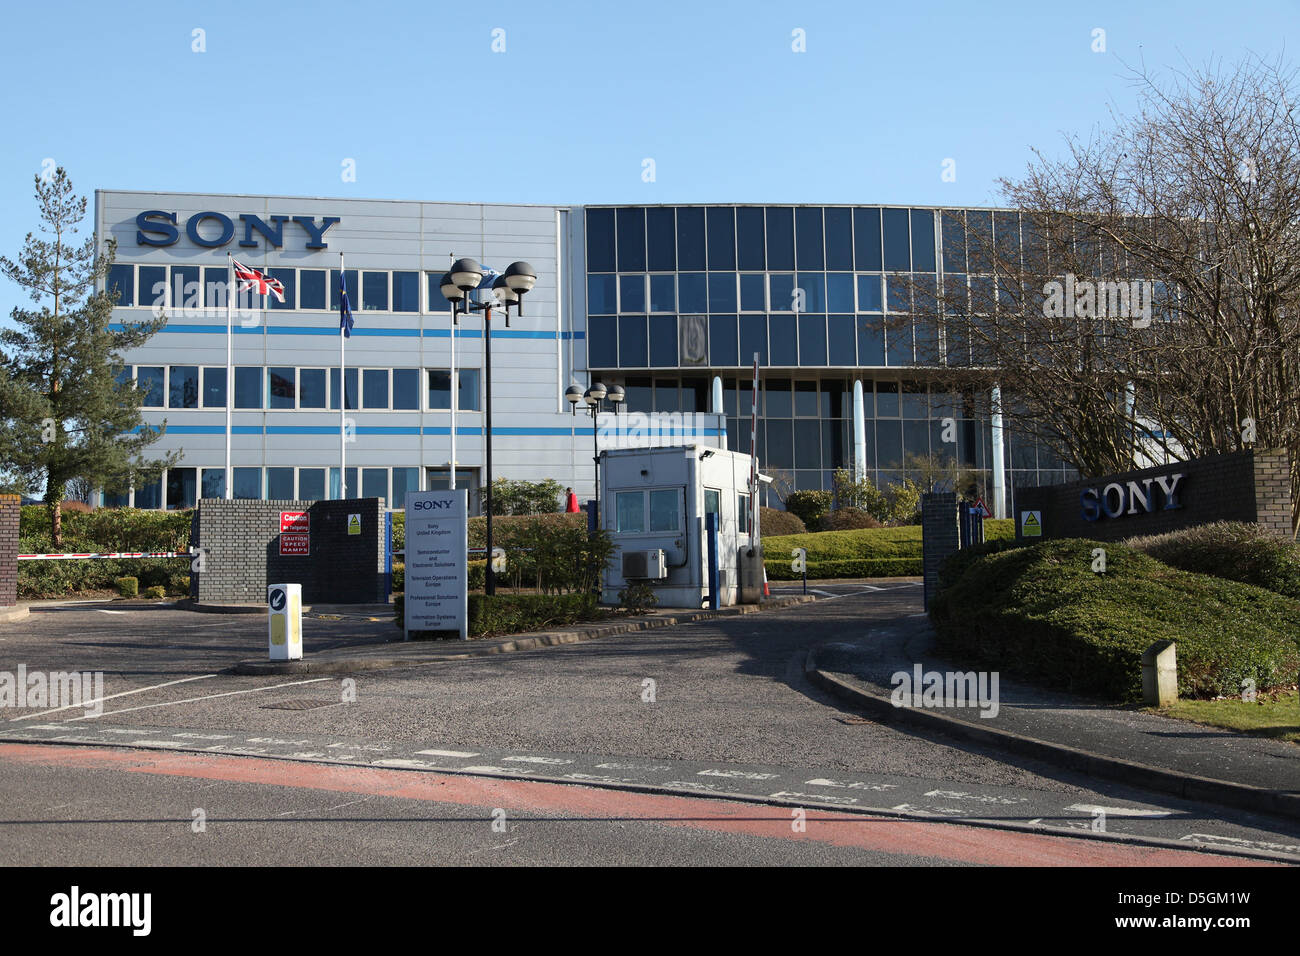 Basingstoke,UK. 2nd April 2013 - A general view of the Sony Europe offices in Basingstoke, where Hawk-Eye Innovations - Stock Image